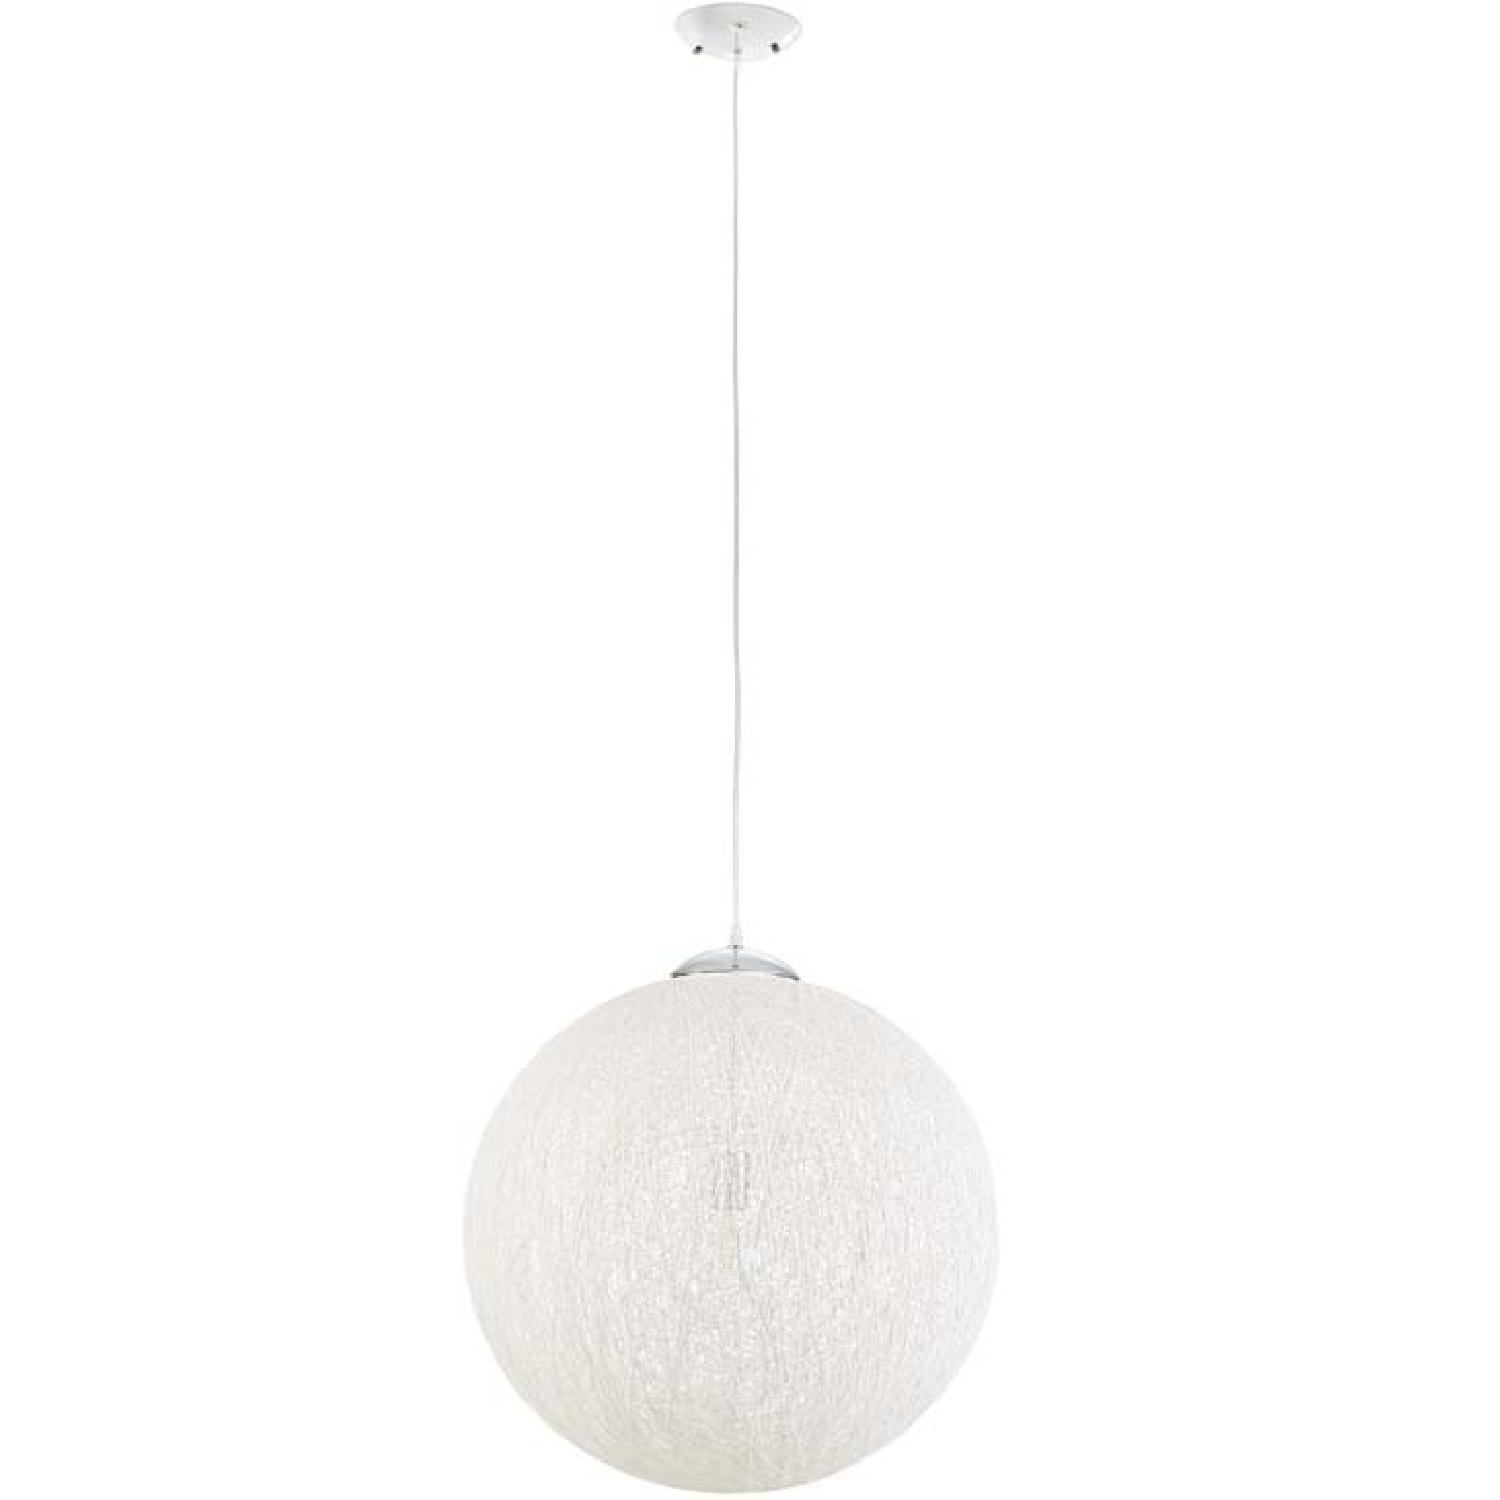 Manhattan Home Design Spool Pendant Light